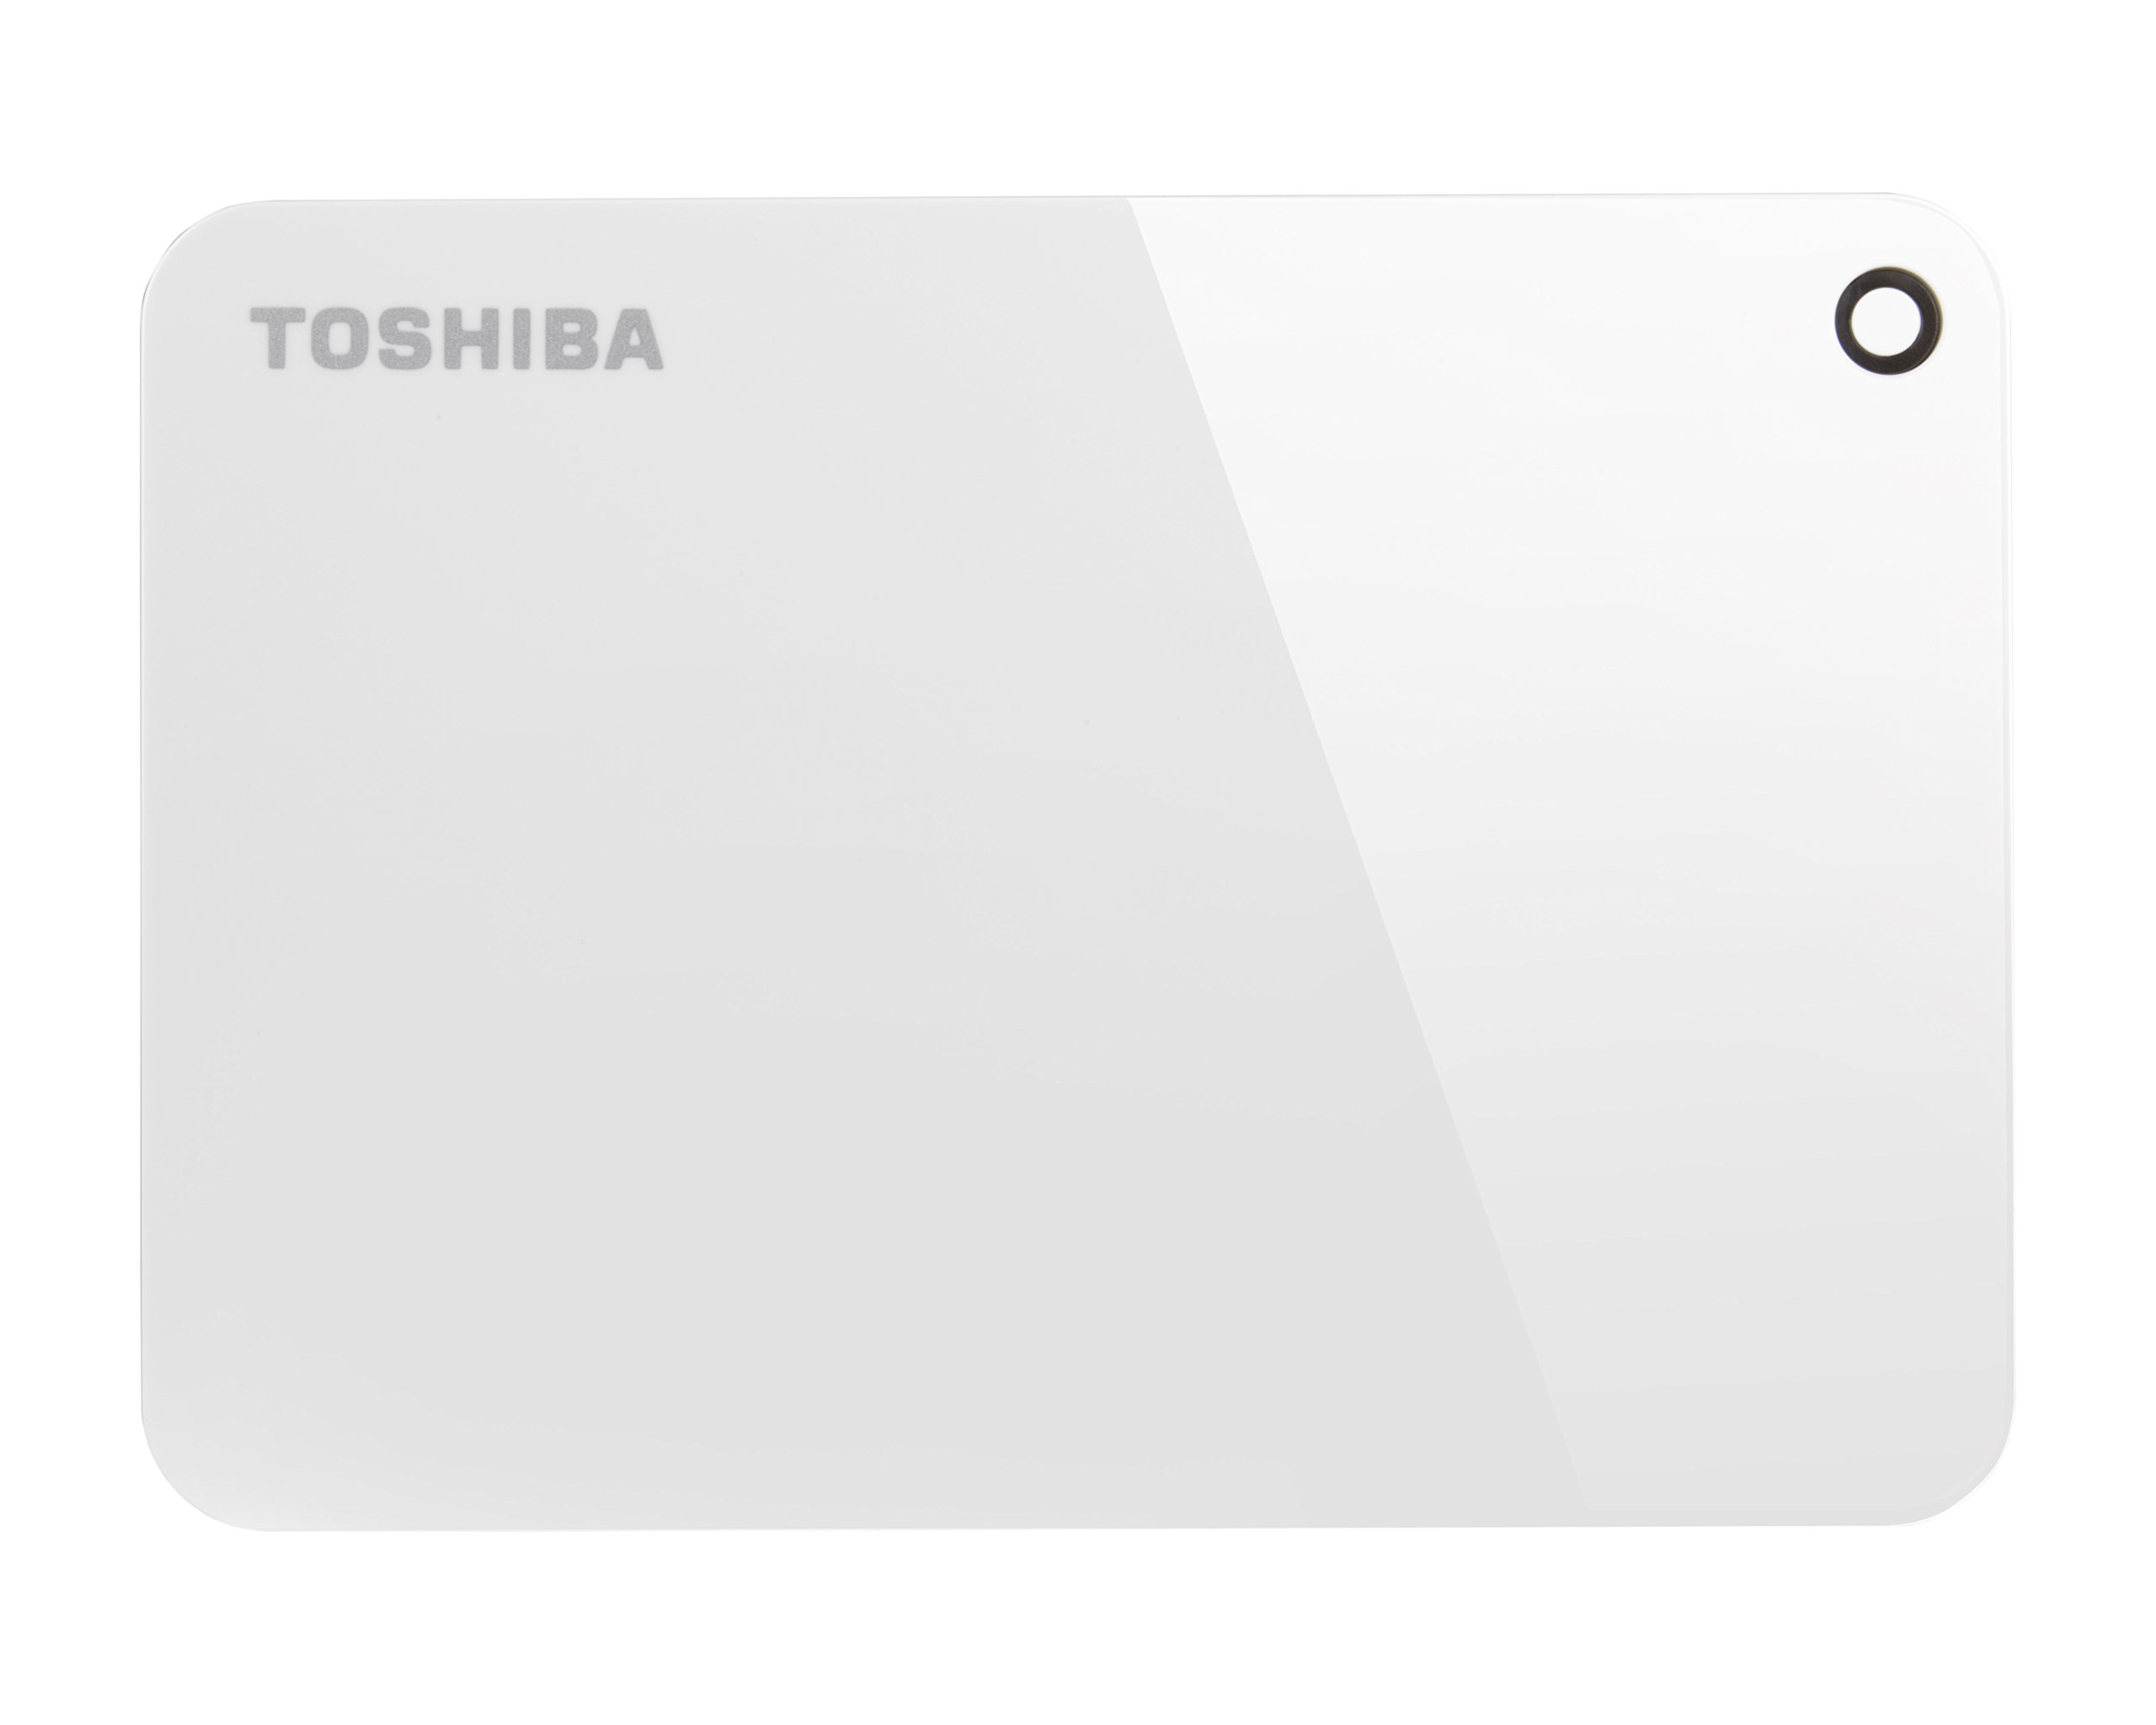 Toshiba Canvio Advance 2TB Portable External Hard Drive USB 3.0, White (HDTC920XW3AA) by Toshiba (Image #2)